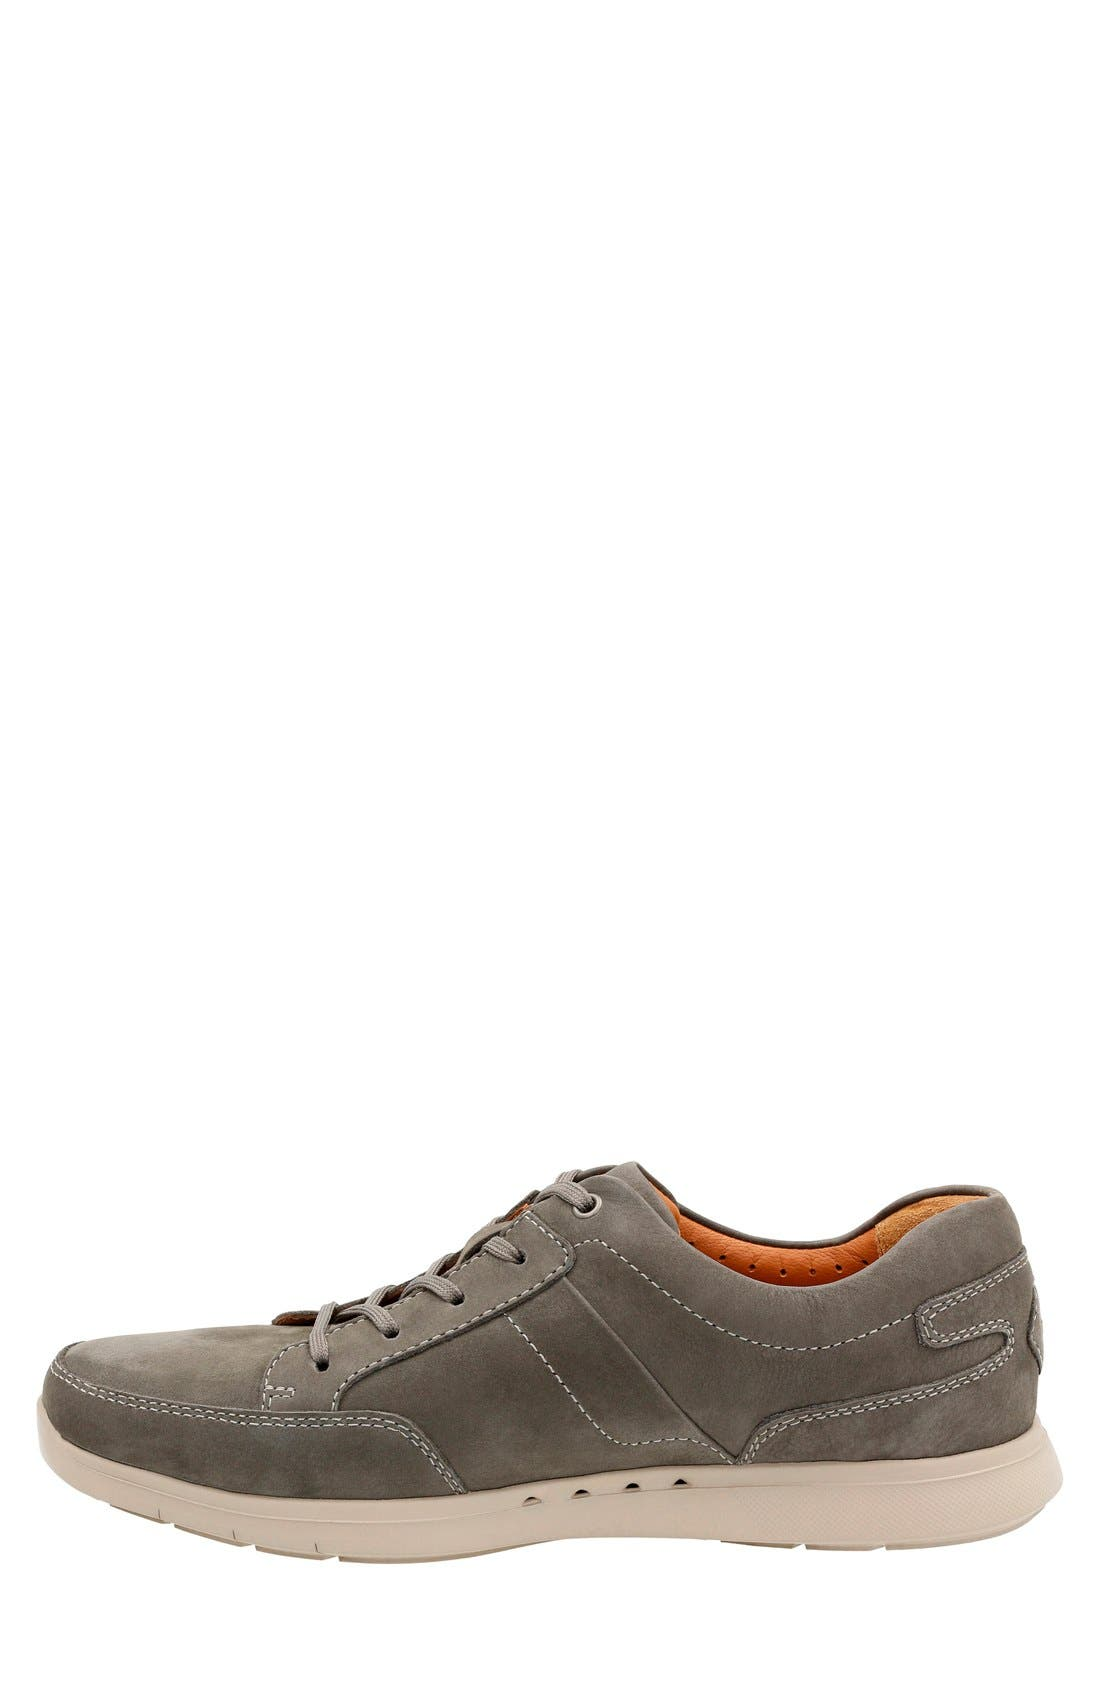 Alternate Image 2  - Clarks® 'Unstructured - Lomac' Leather Sneaker (Men)